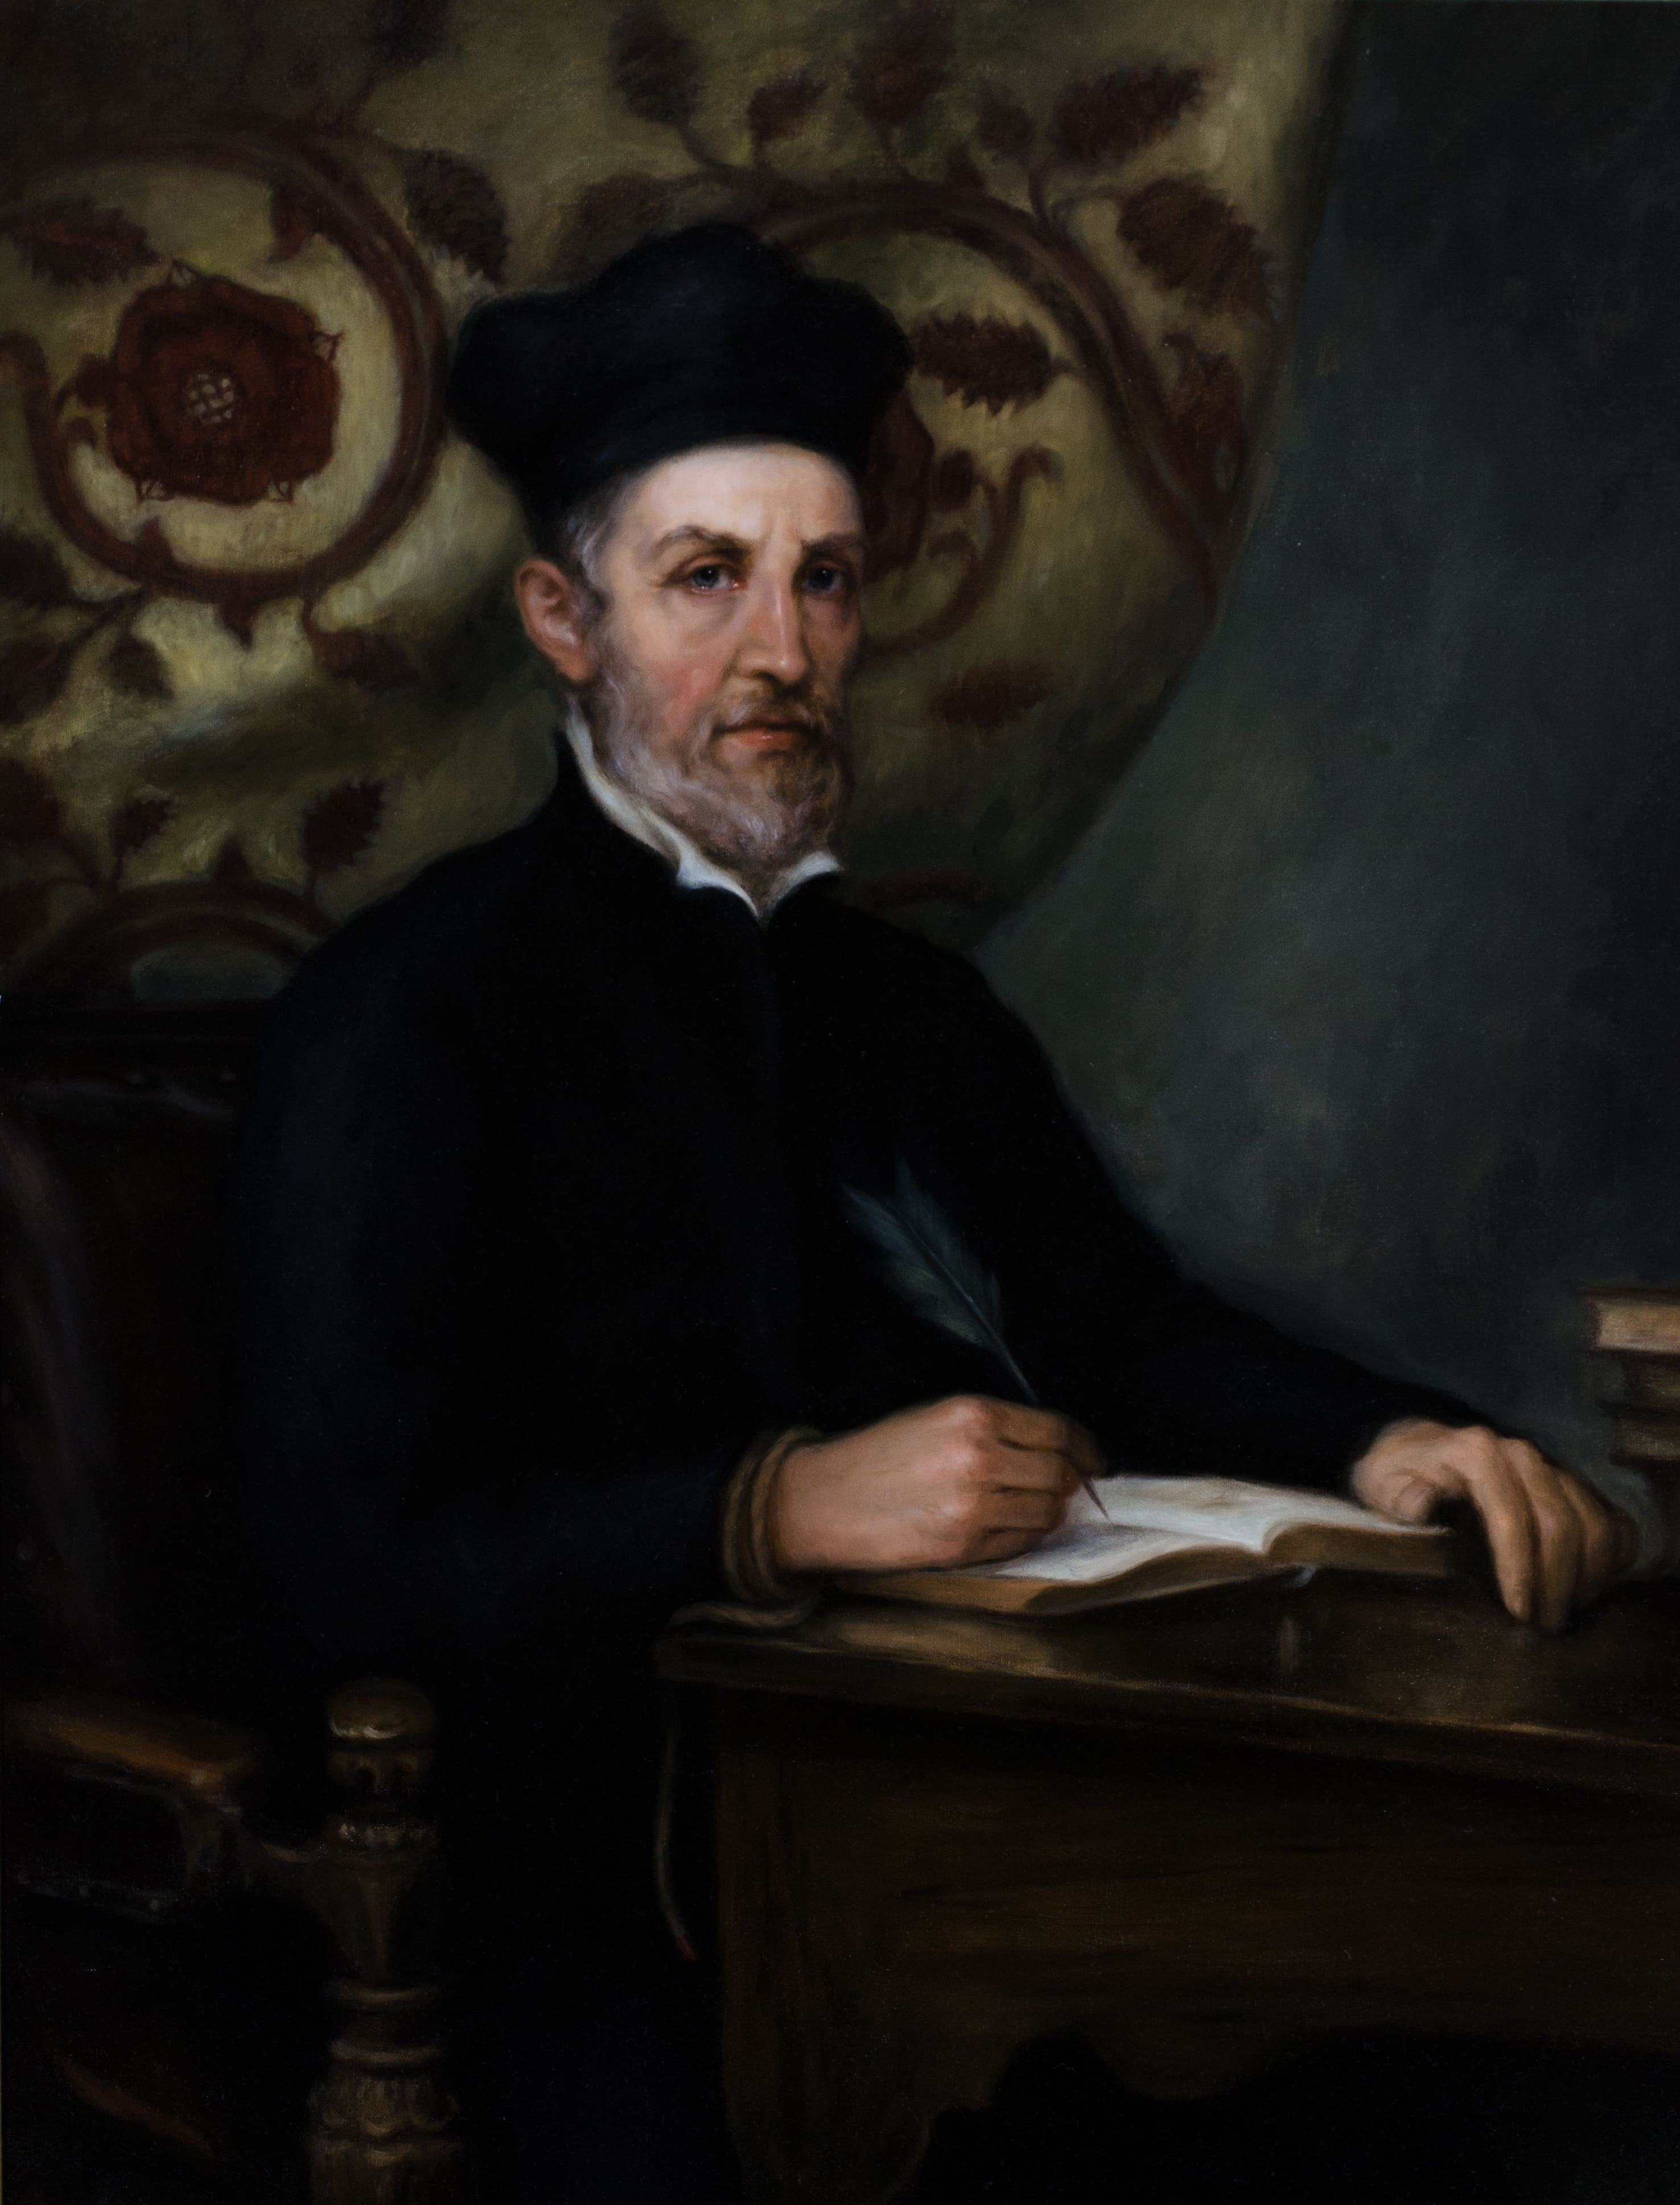 Painting of a white man with a greying beard and wearing a biretta looking directly at viewer. He is sat at a desk writing into a book using a quill. Around his right wrist is a cord.